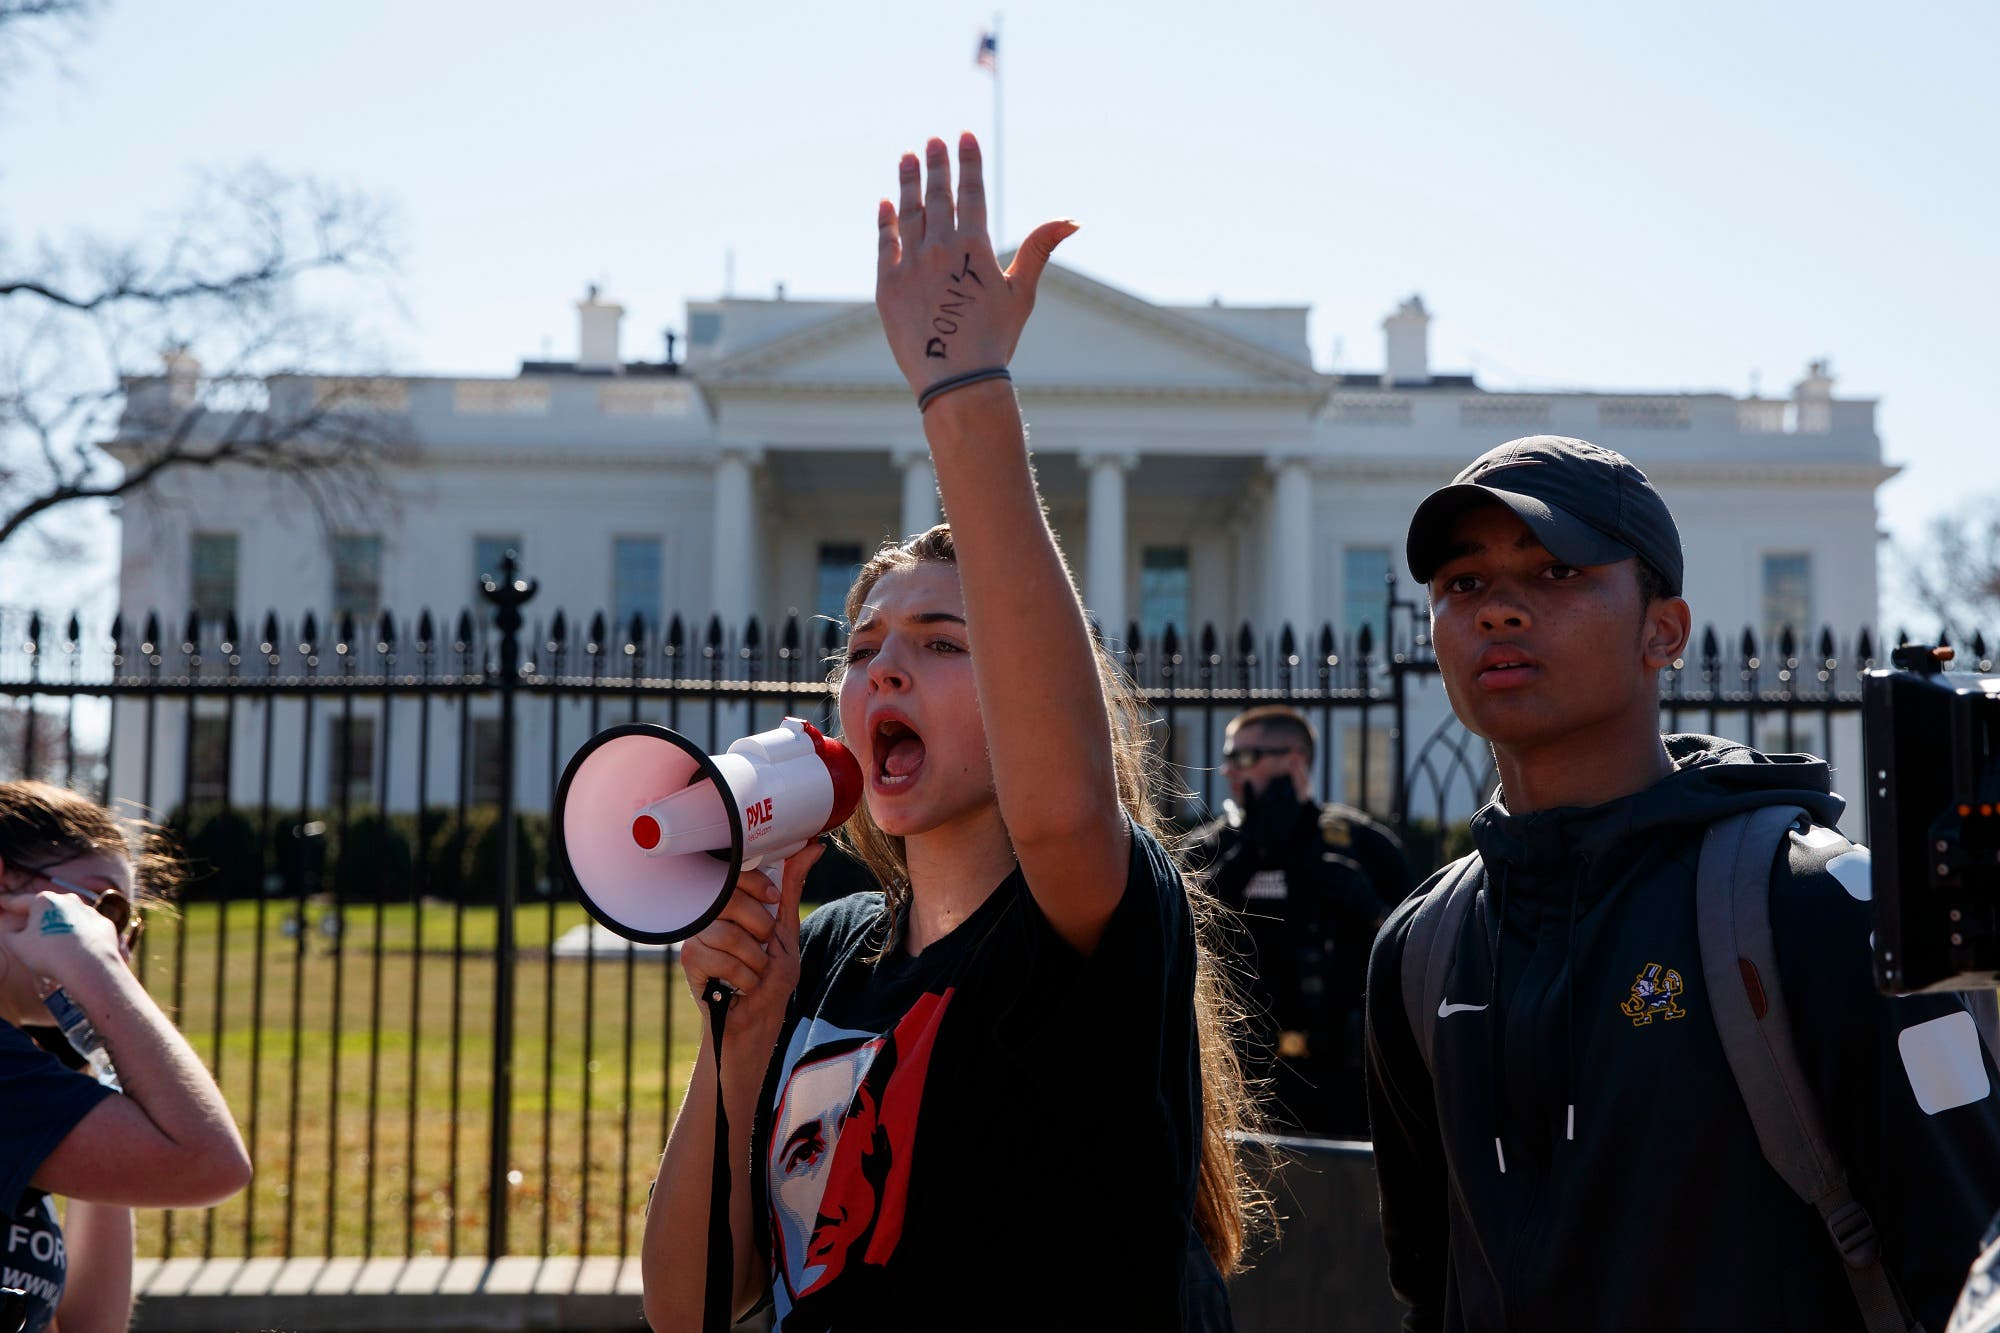 Sofia Hidalgo, 15, of Glenmont, Md., chants during a student protest for gun control legislation in front of the White House on Feb. 21, 2018, in Washington. (AP)